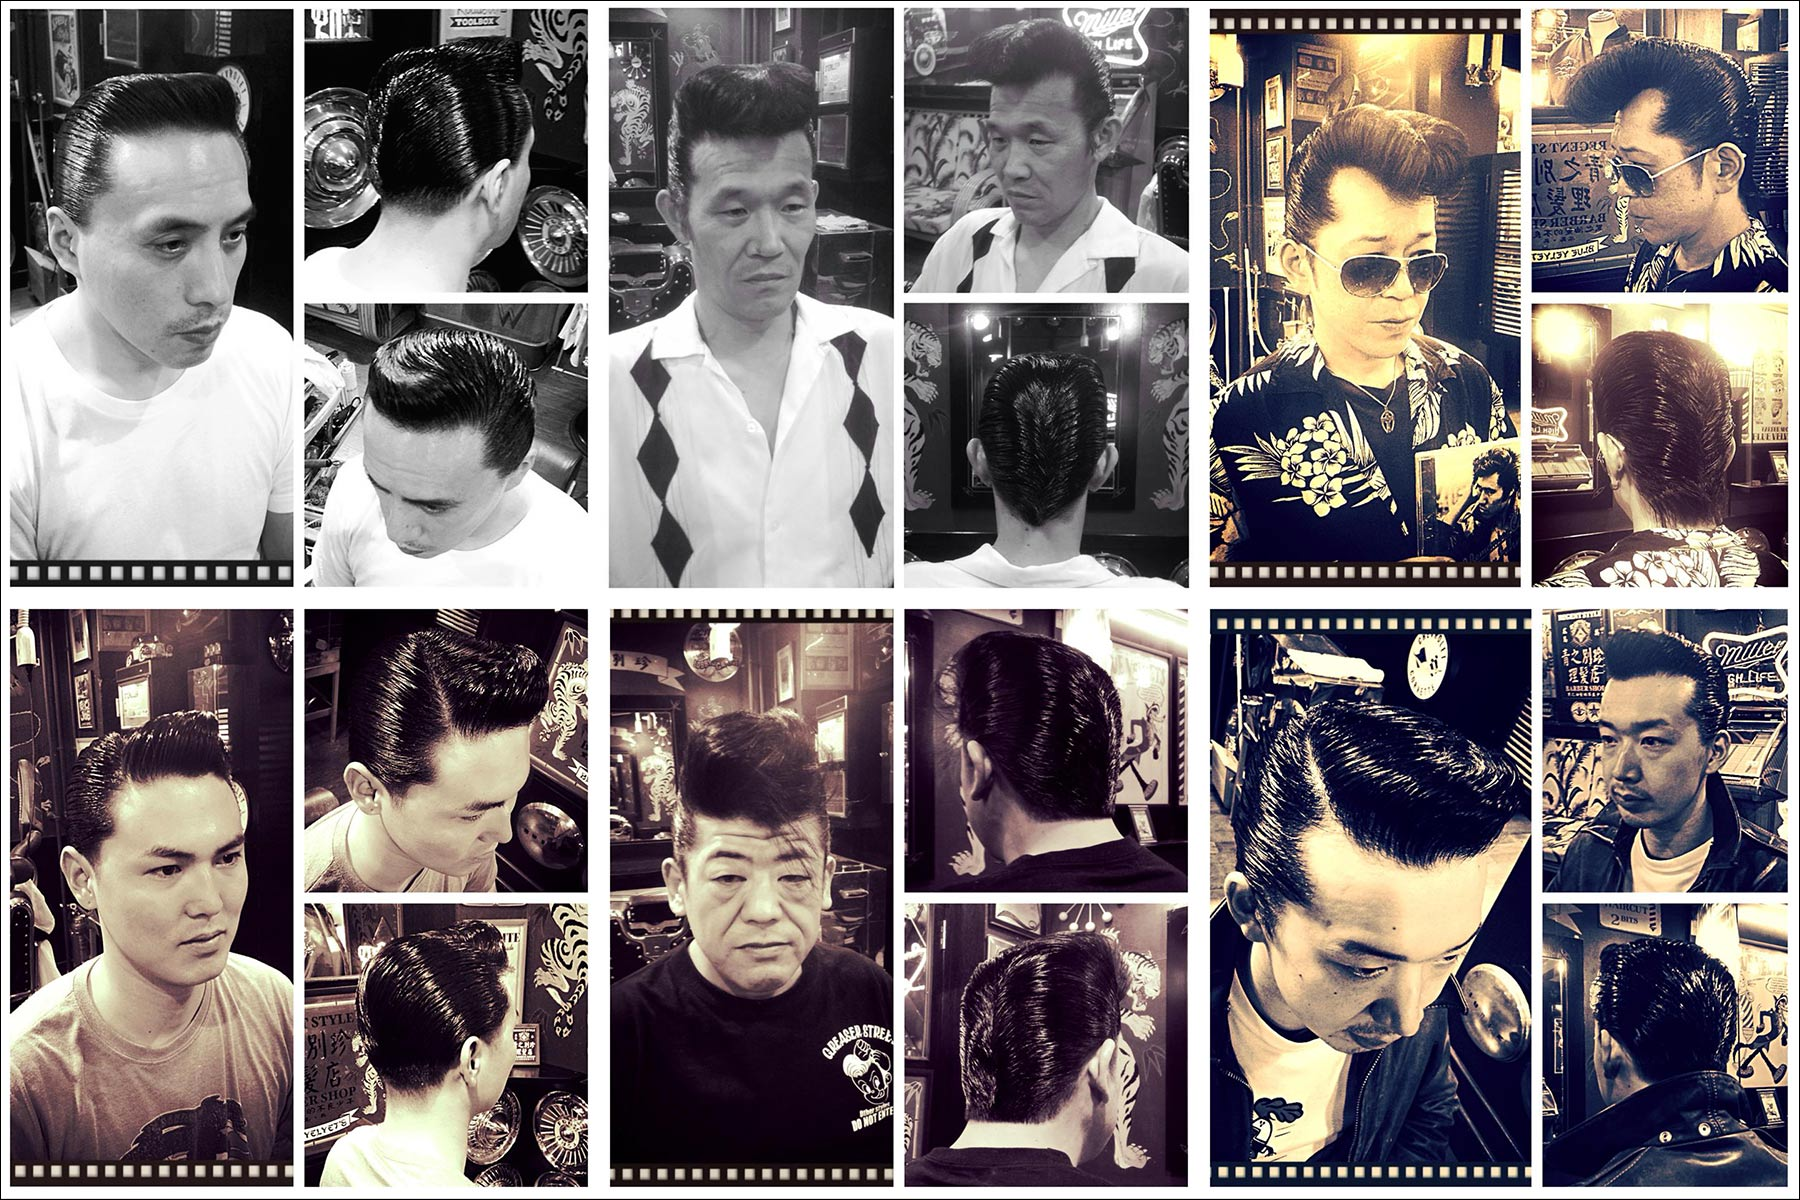 B&W portraits of Japanese rockabilly men in greasy 1950s pompadours from Blue Velvet's barber shop. Ponyboy magazine New York.